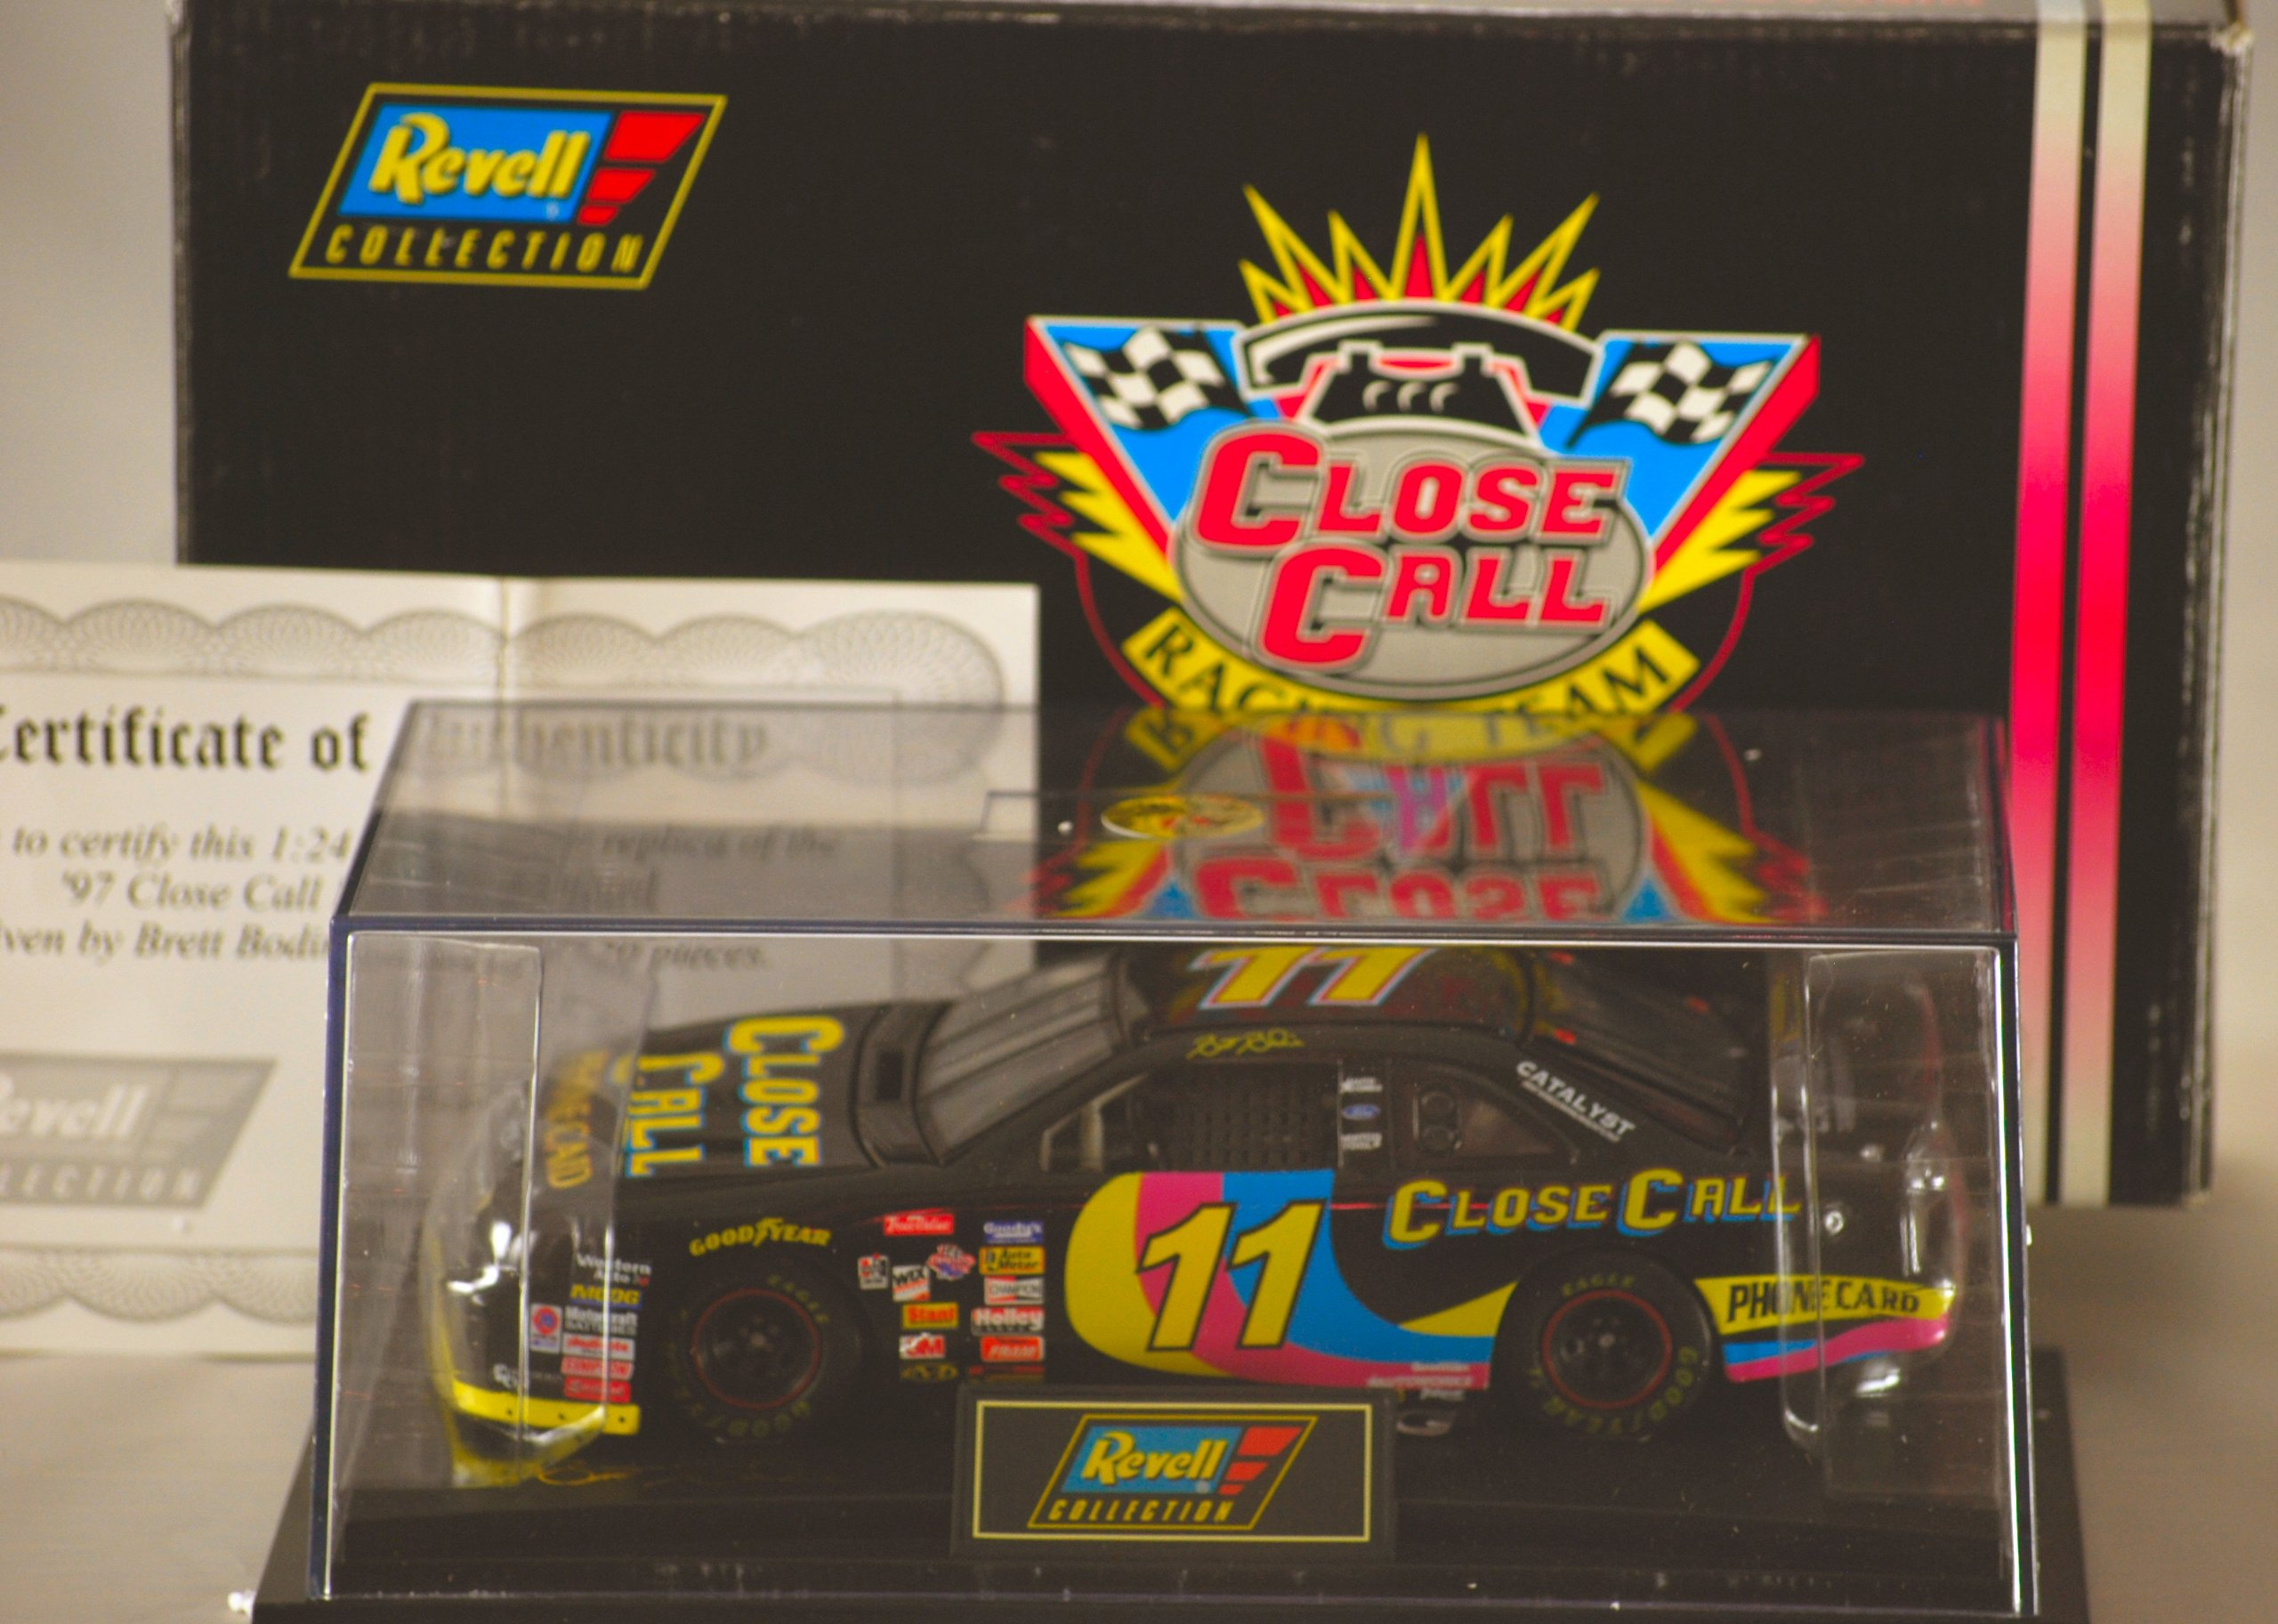 1997 - Revell-Monogram Inc / NASCAR - Brett Bodine #11 - Close Call Racing Team - Ford Thunderbird - 1:24 Scale Die Cast - 1 of 3,120 - Display Case & COA - Very Rare - Limited Edition - Collectible